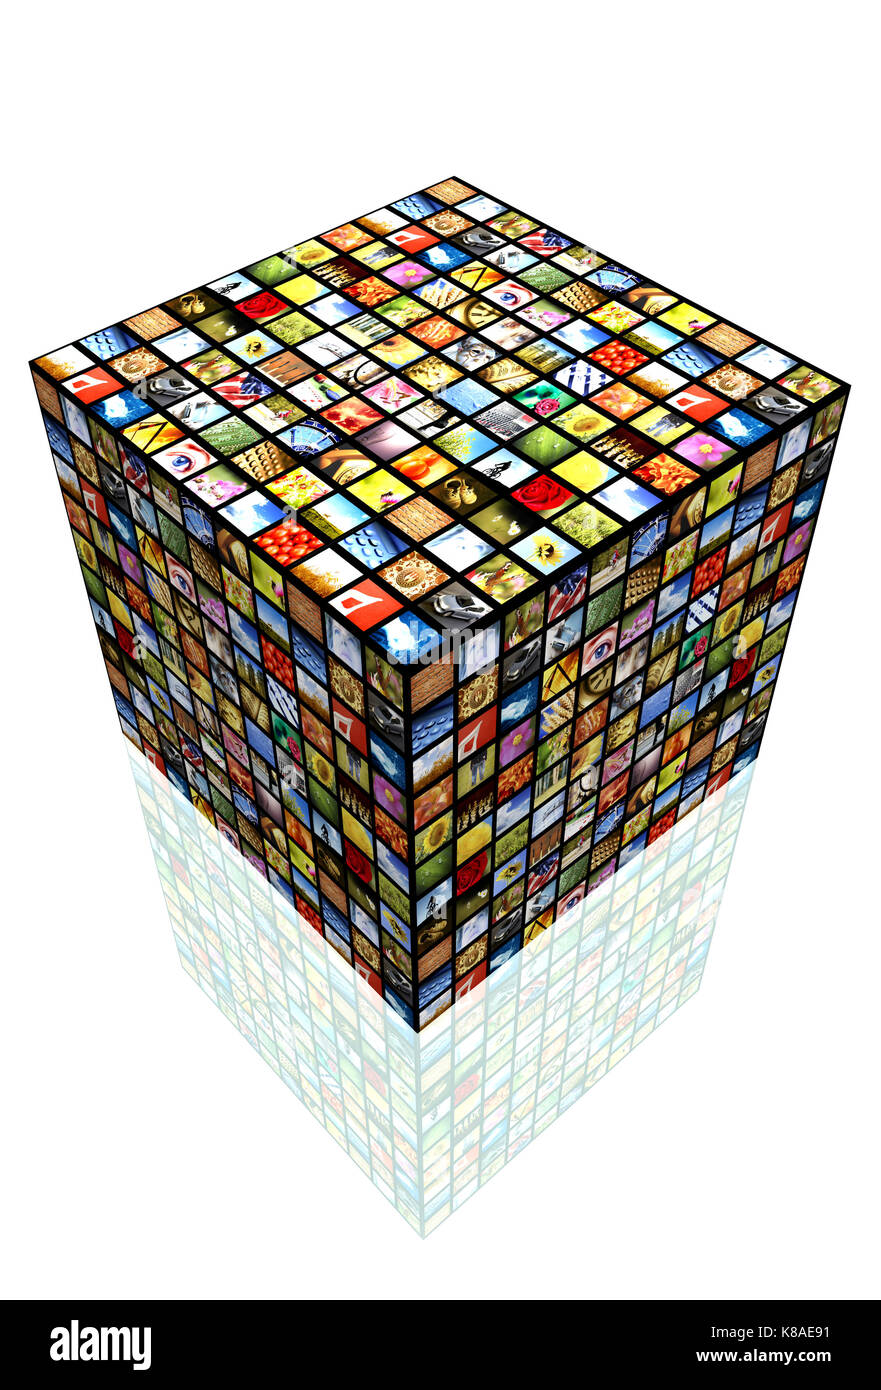 cube with many screens, internet broadcast and IPTV - Stock Image